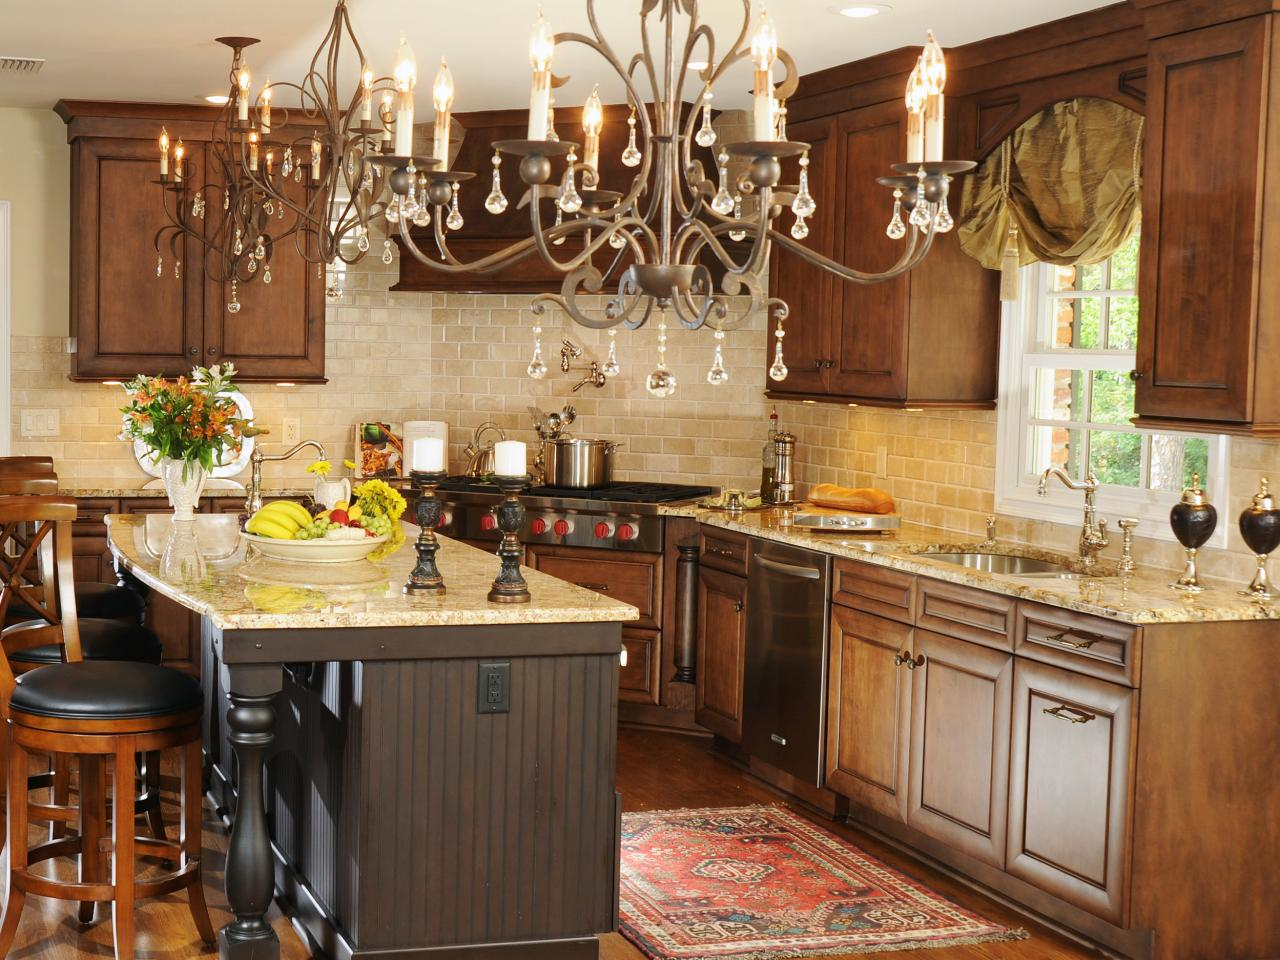 Kitchen design styles pictures ideas tips from hgtv hgtv - Country style kitchen cabinets design ...